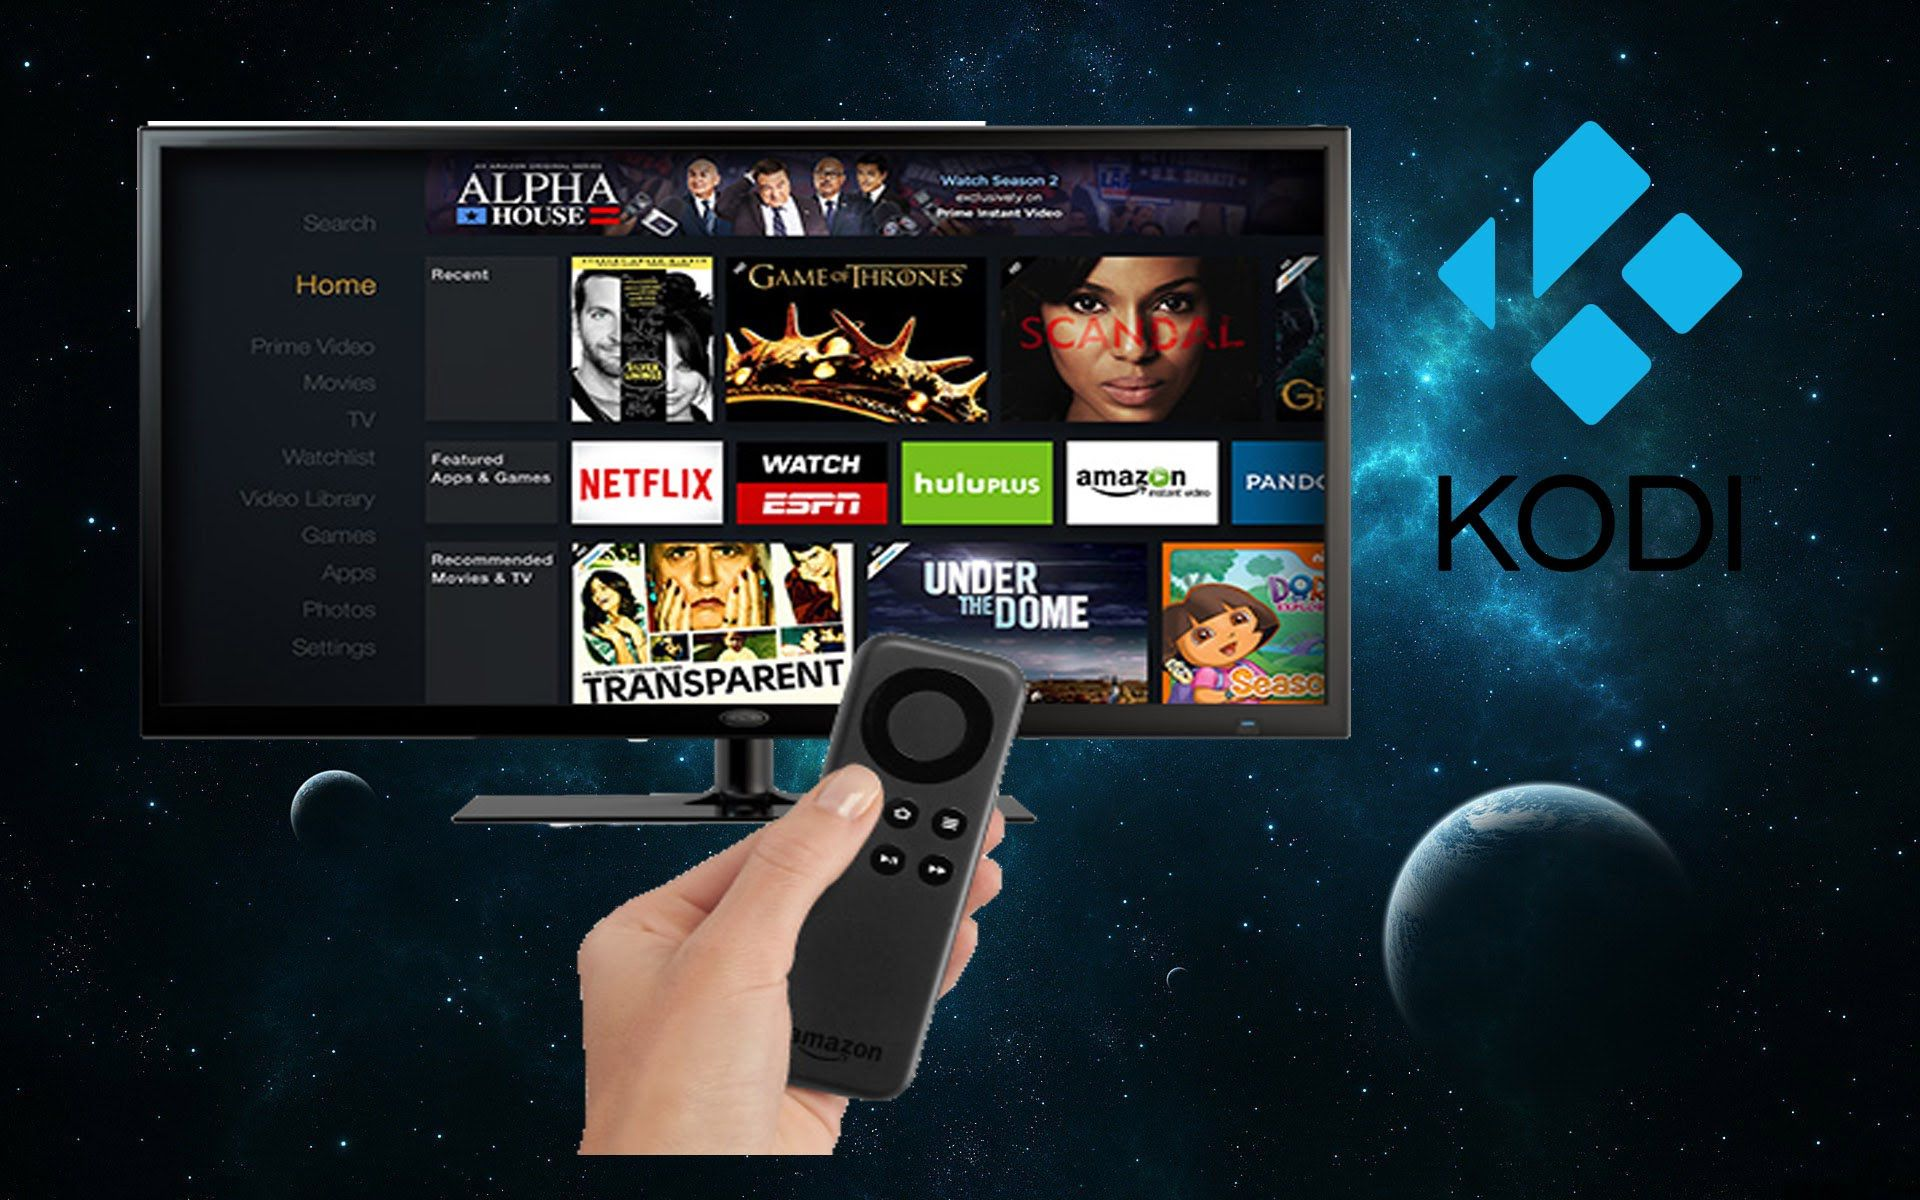 How To Use Kodi On Firestick Fire tv, Amazon fire tv